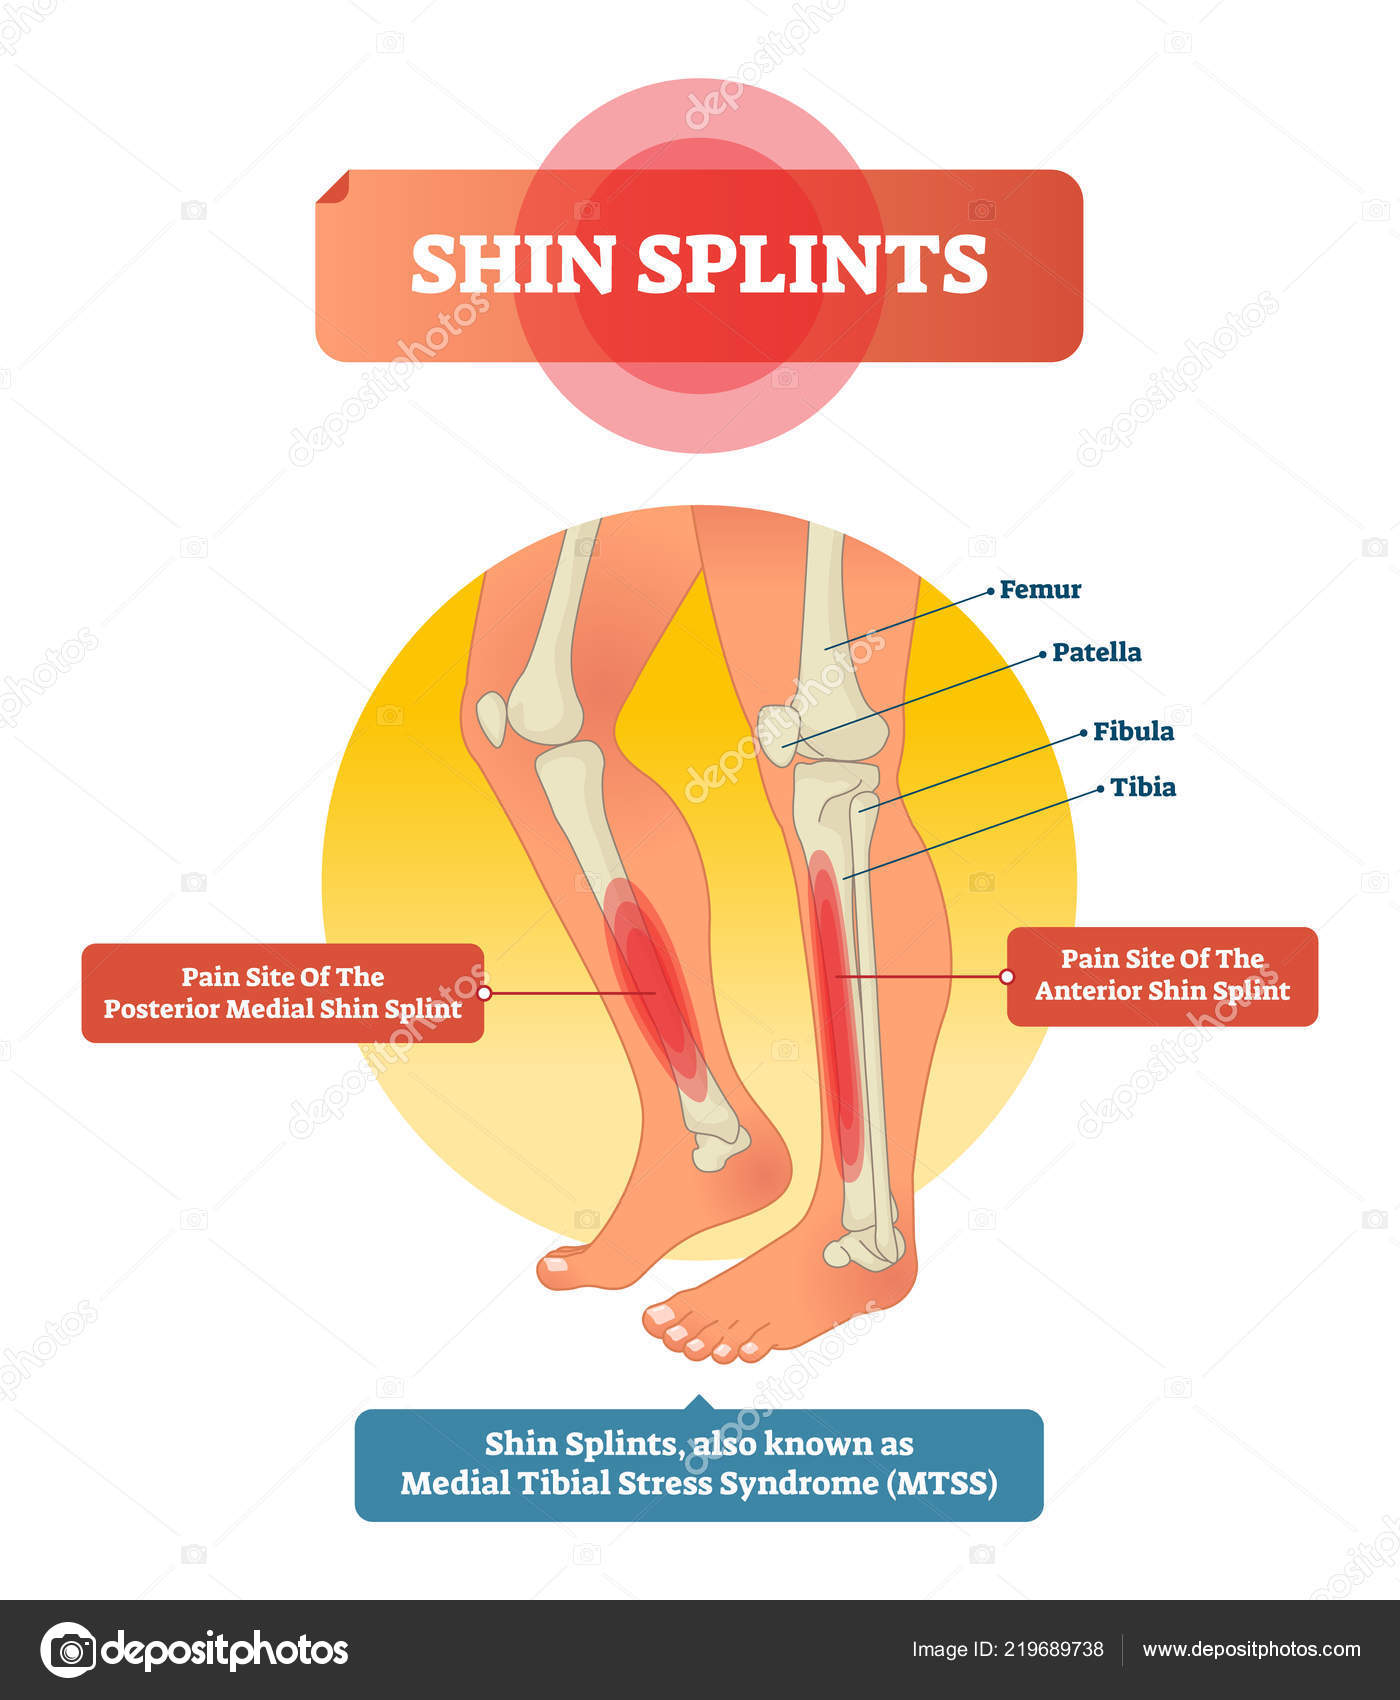 hight resolution of leg muscle sport trauma and bone pain labeled diagram isolated femur patella fibula tibia and foot bones with shown injury location